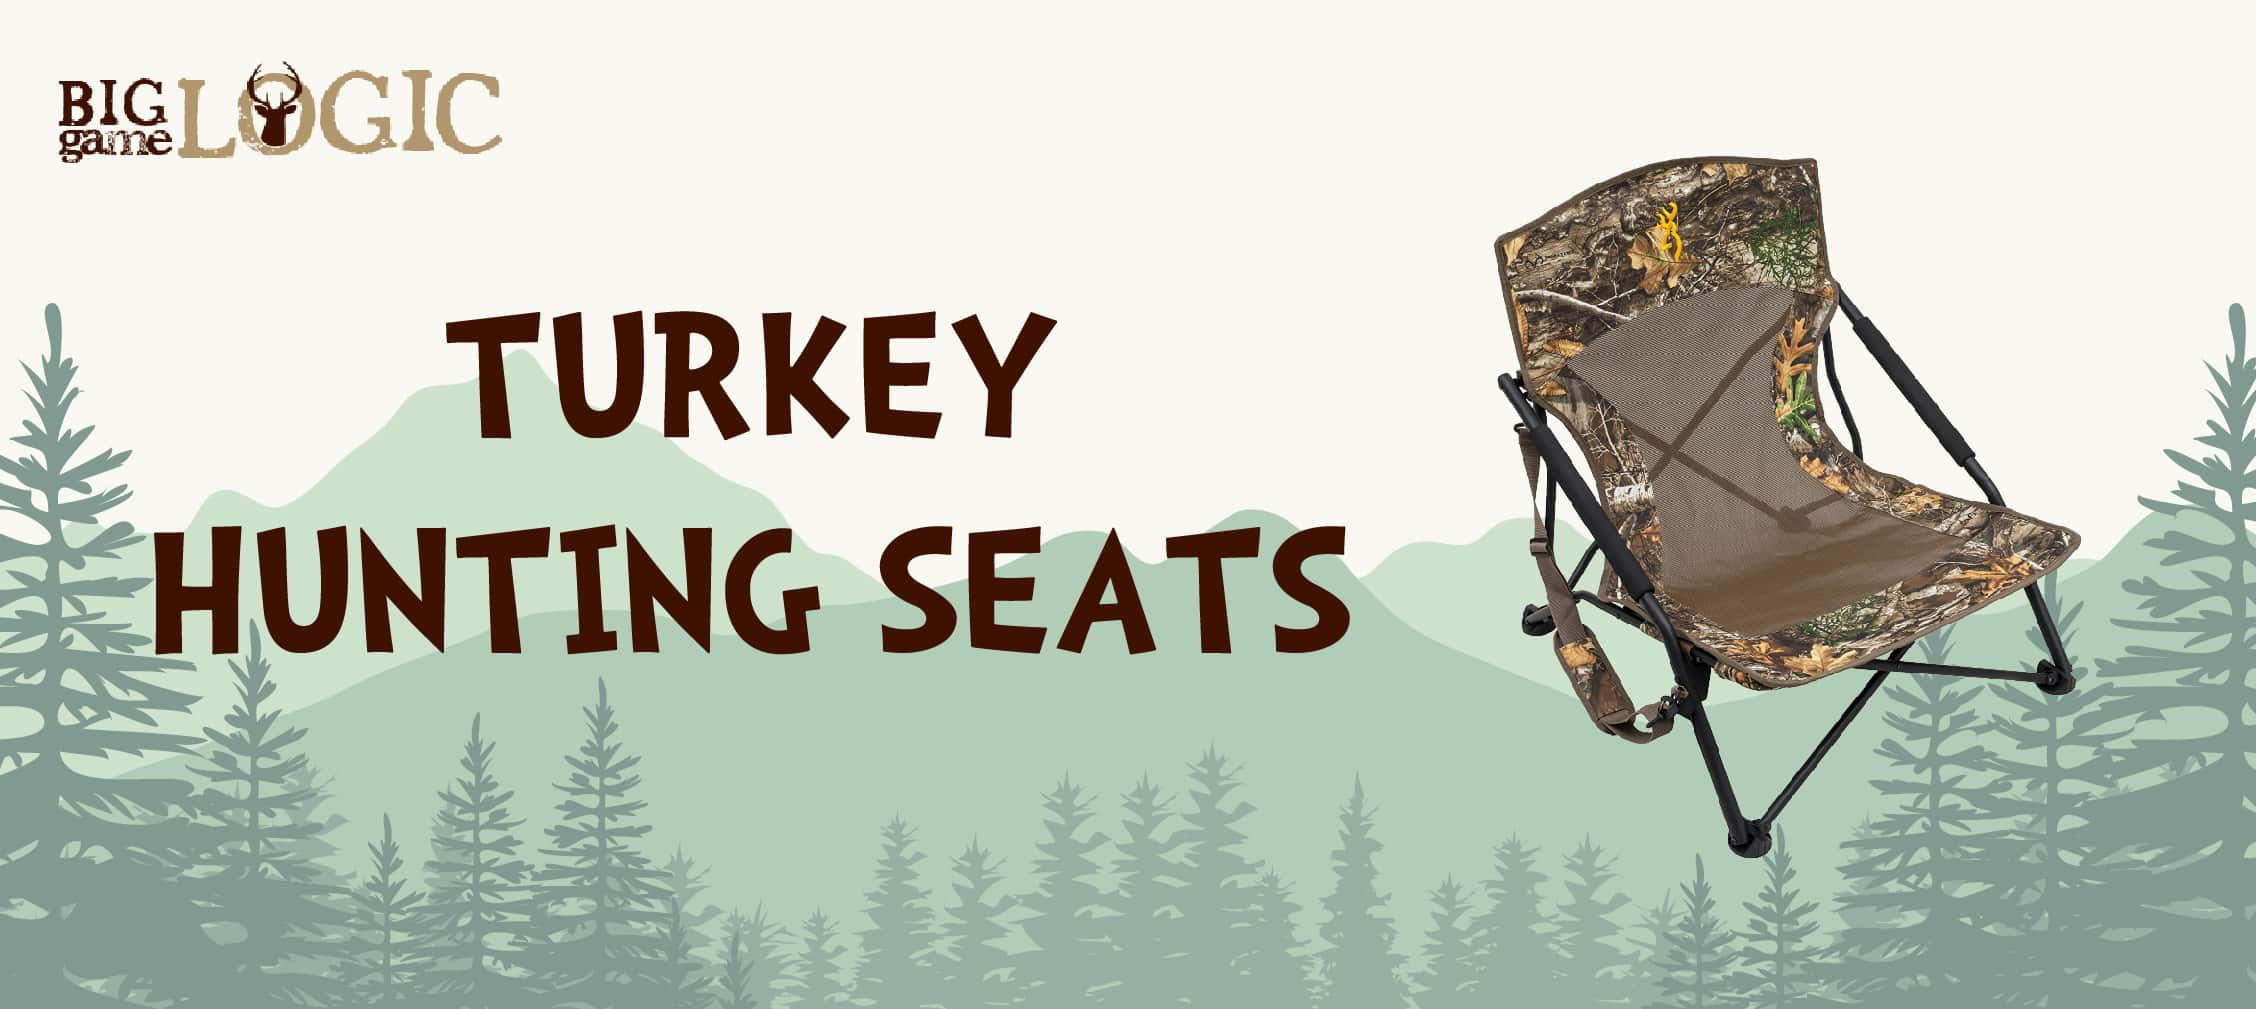 Best Turkey Hunting Seats And Chairs Of 2020 Buyer S Guide